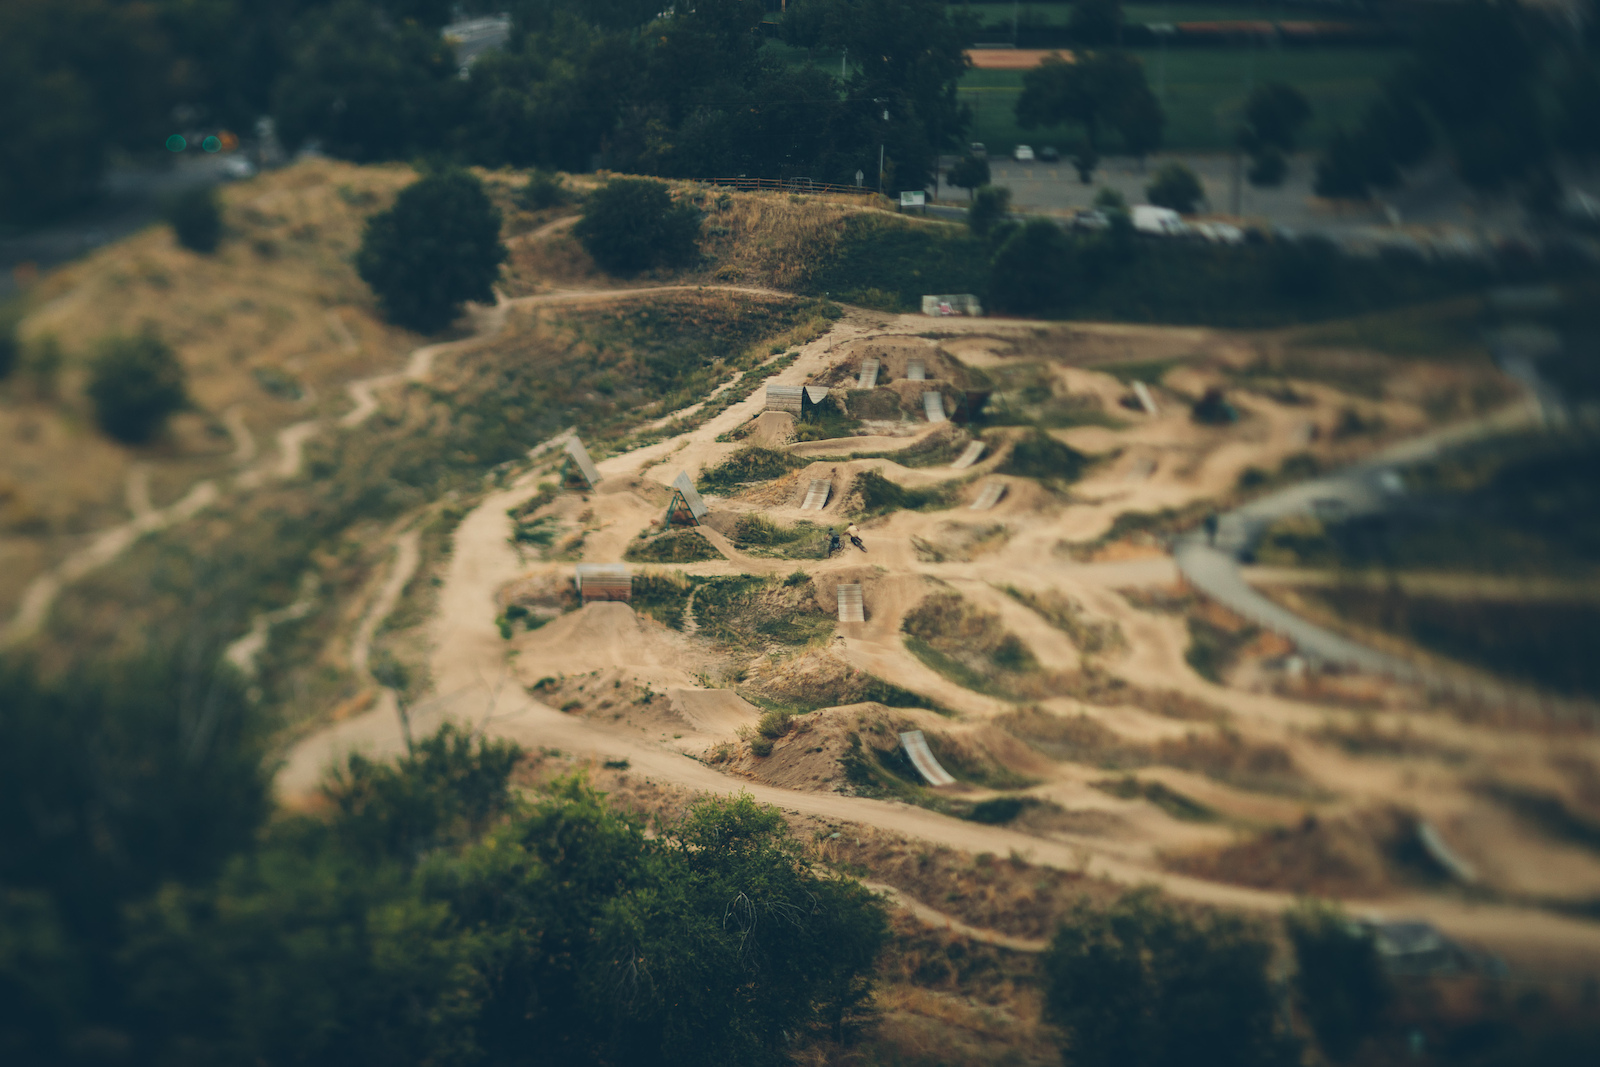 The Boise Bike Park has transformed this space and made it a bussling hub with riders of all ages and skill levels.